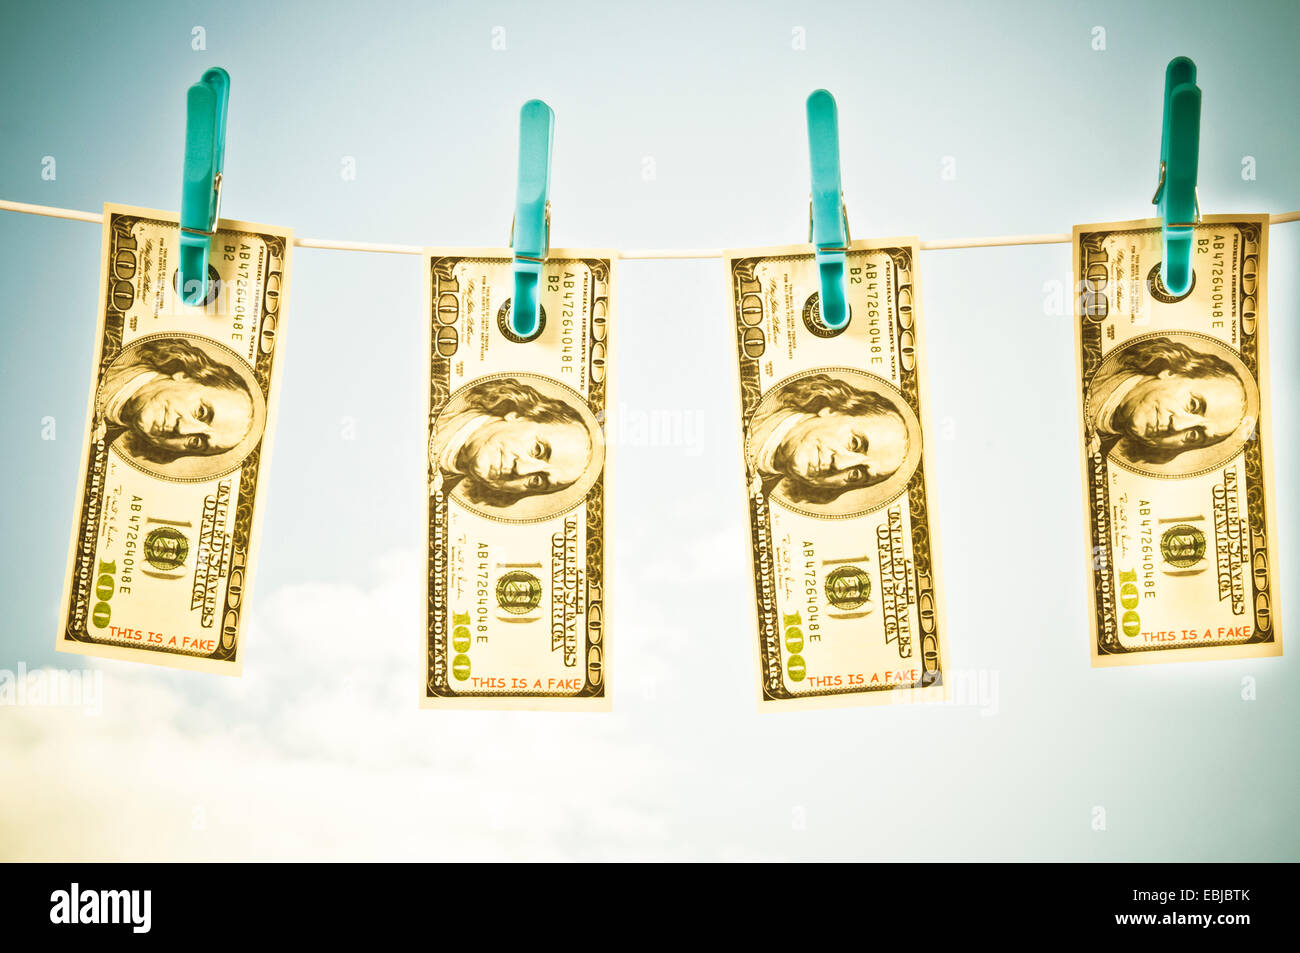 fake dollars banknotes hanging on a rope with clothespins - Stock Image